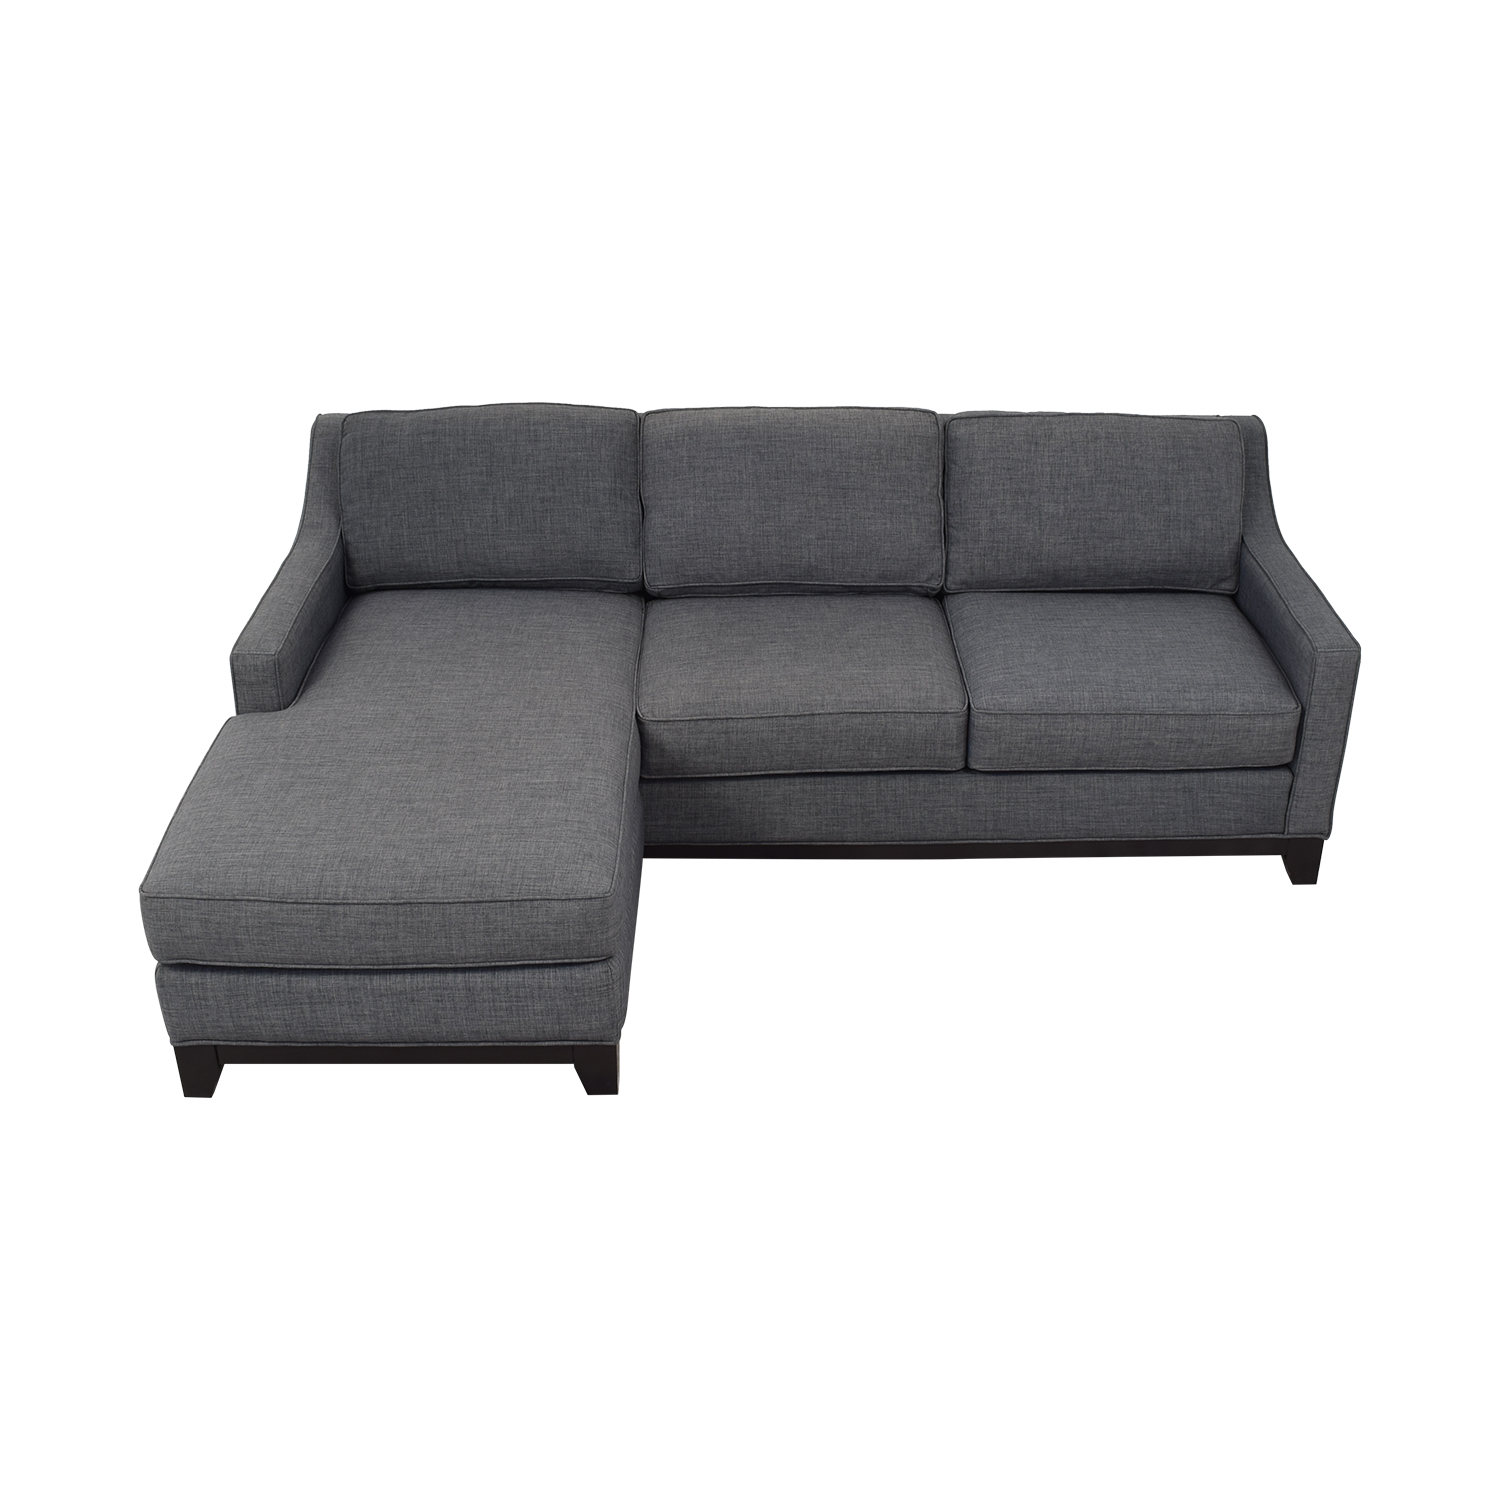 buy Macy's Macy's Keegan Fabric Reversible Chaise Sectional Sofa online